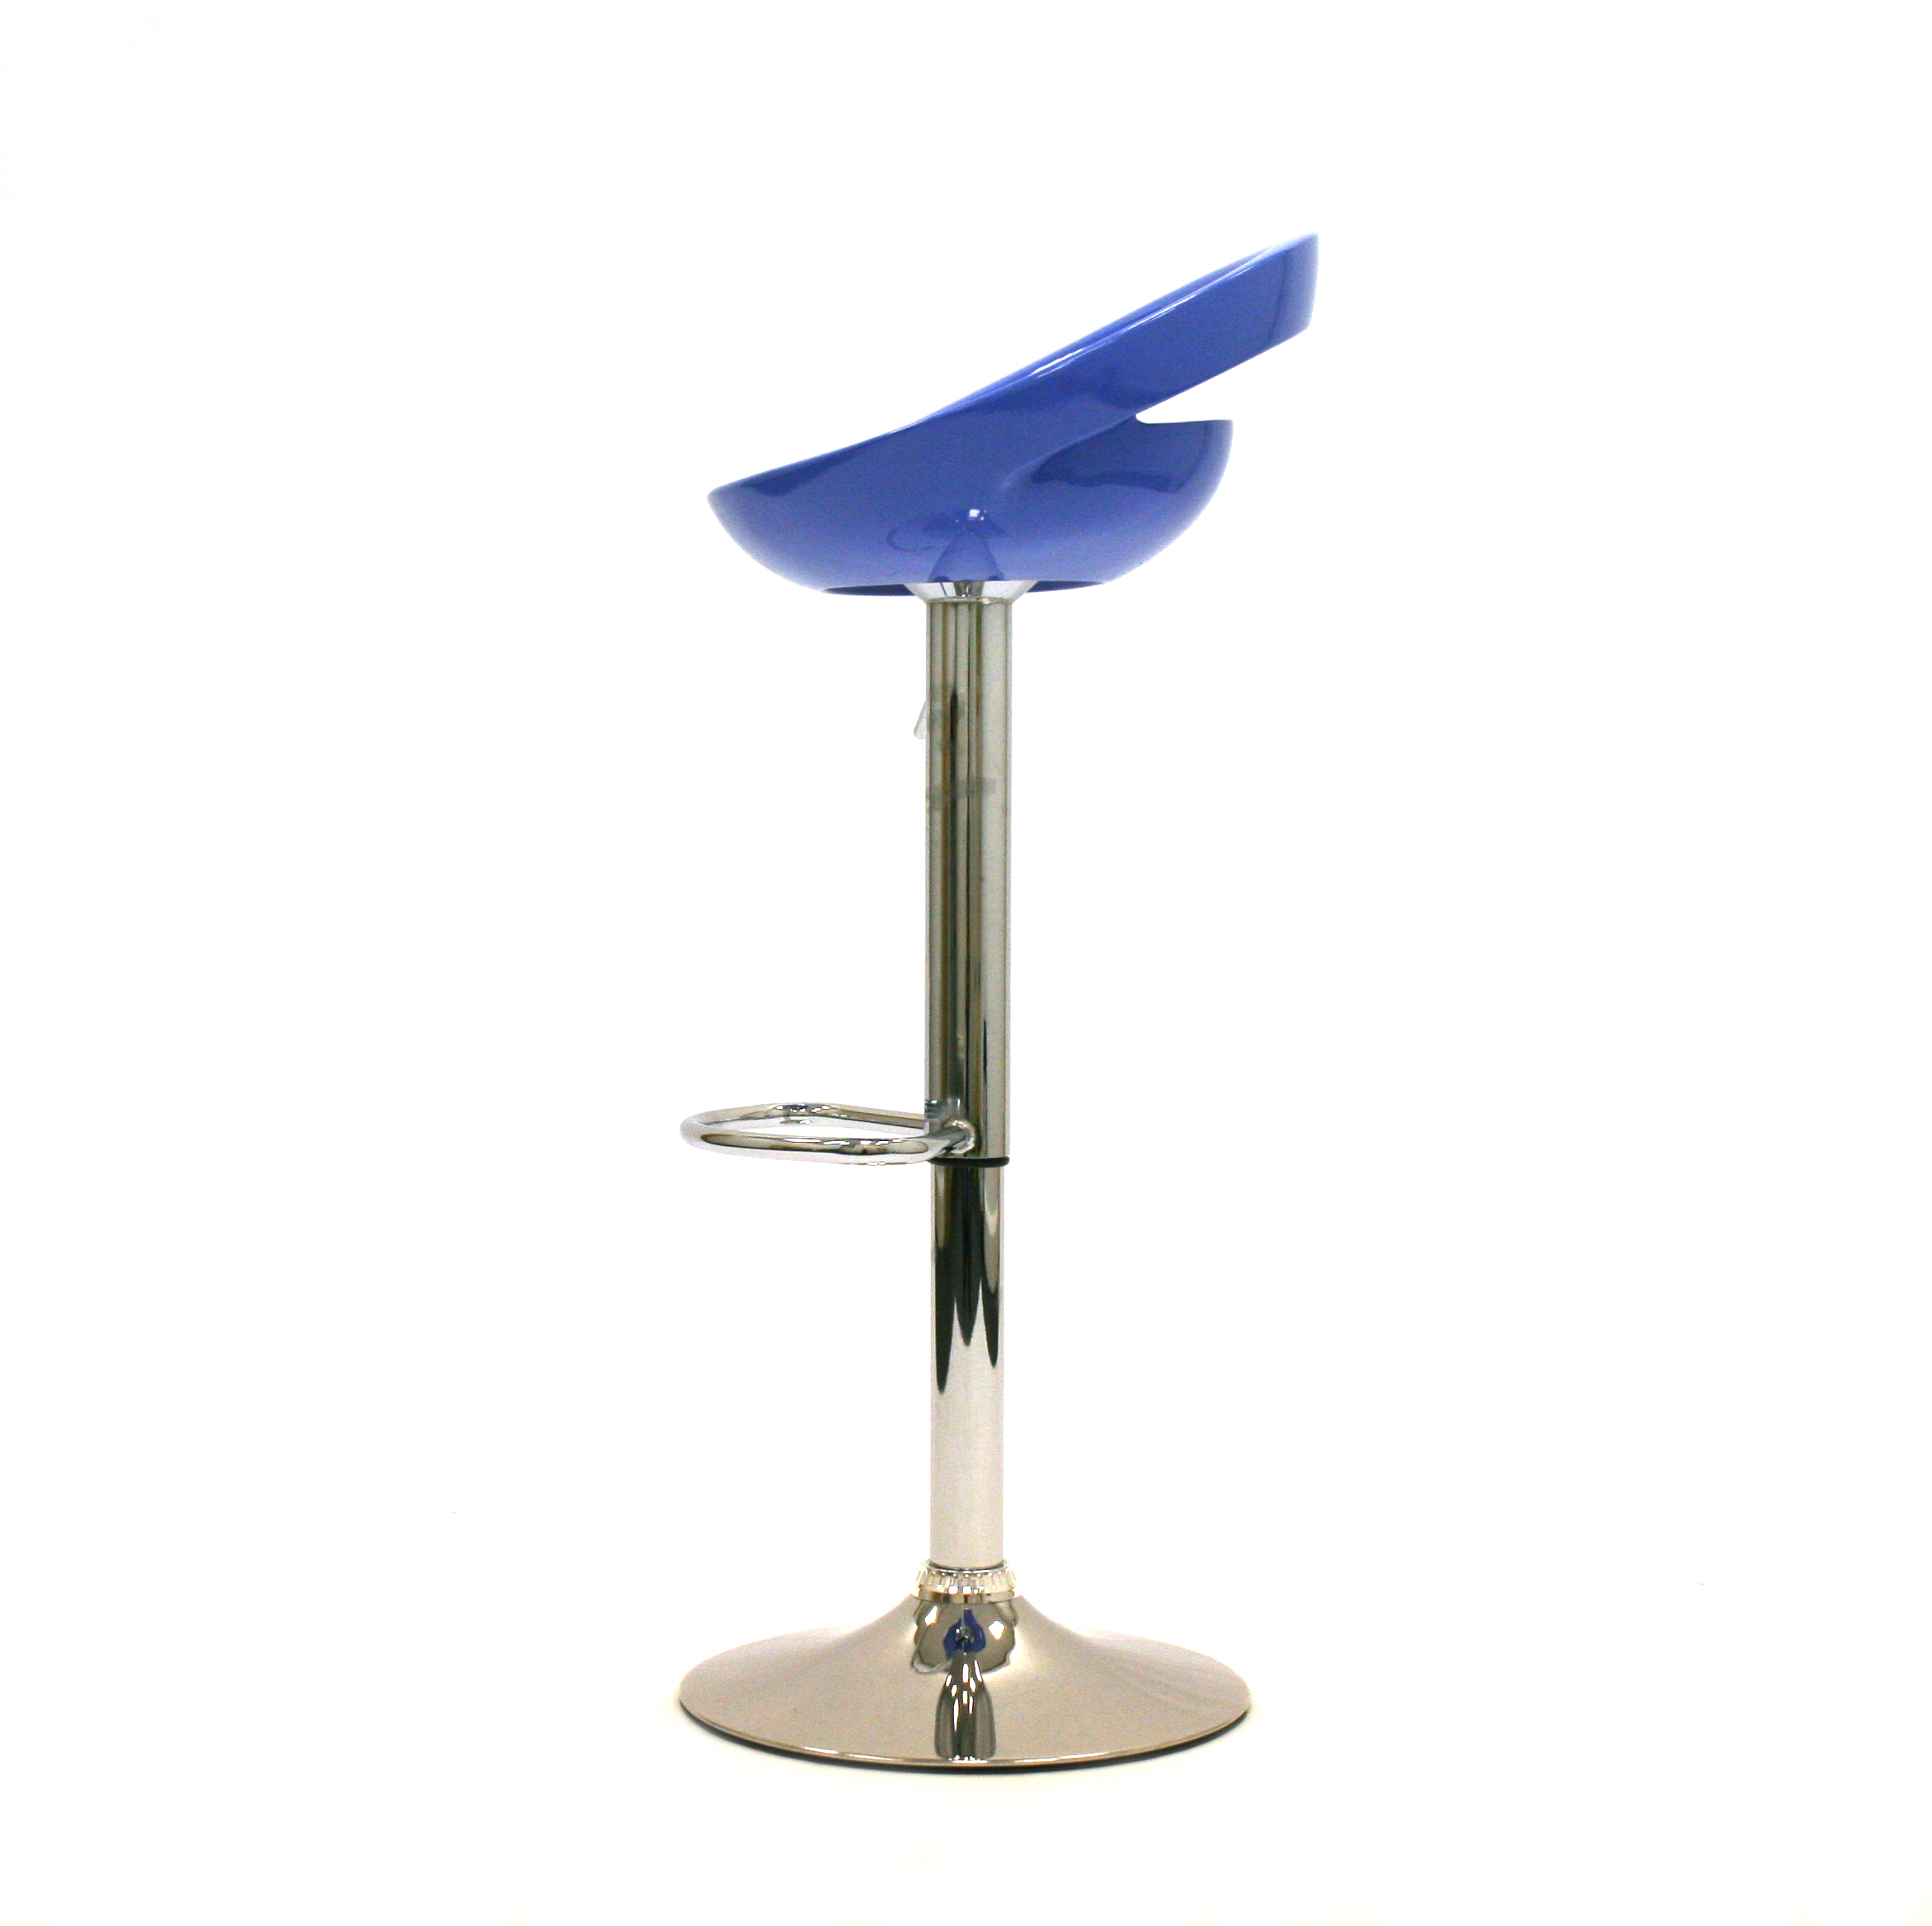 Blue Gas Lift Plastic Swivel Bar Stool With A Chrome Base